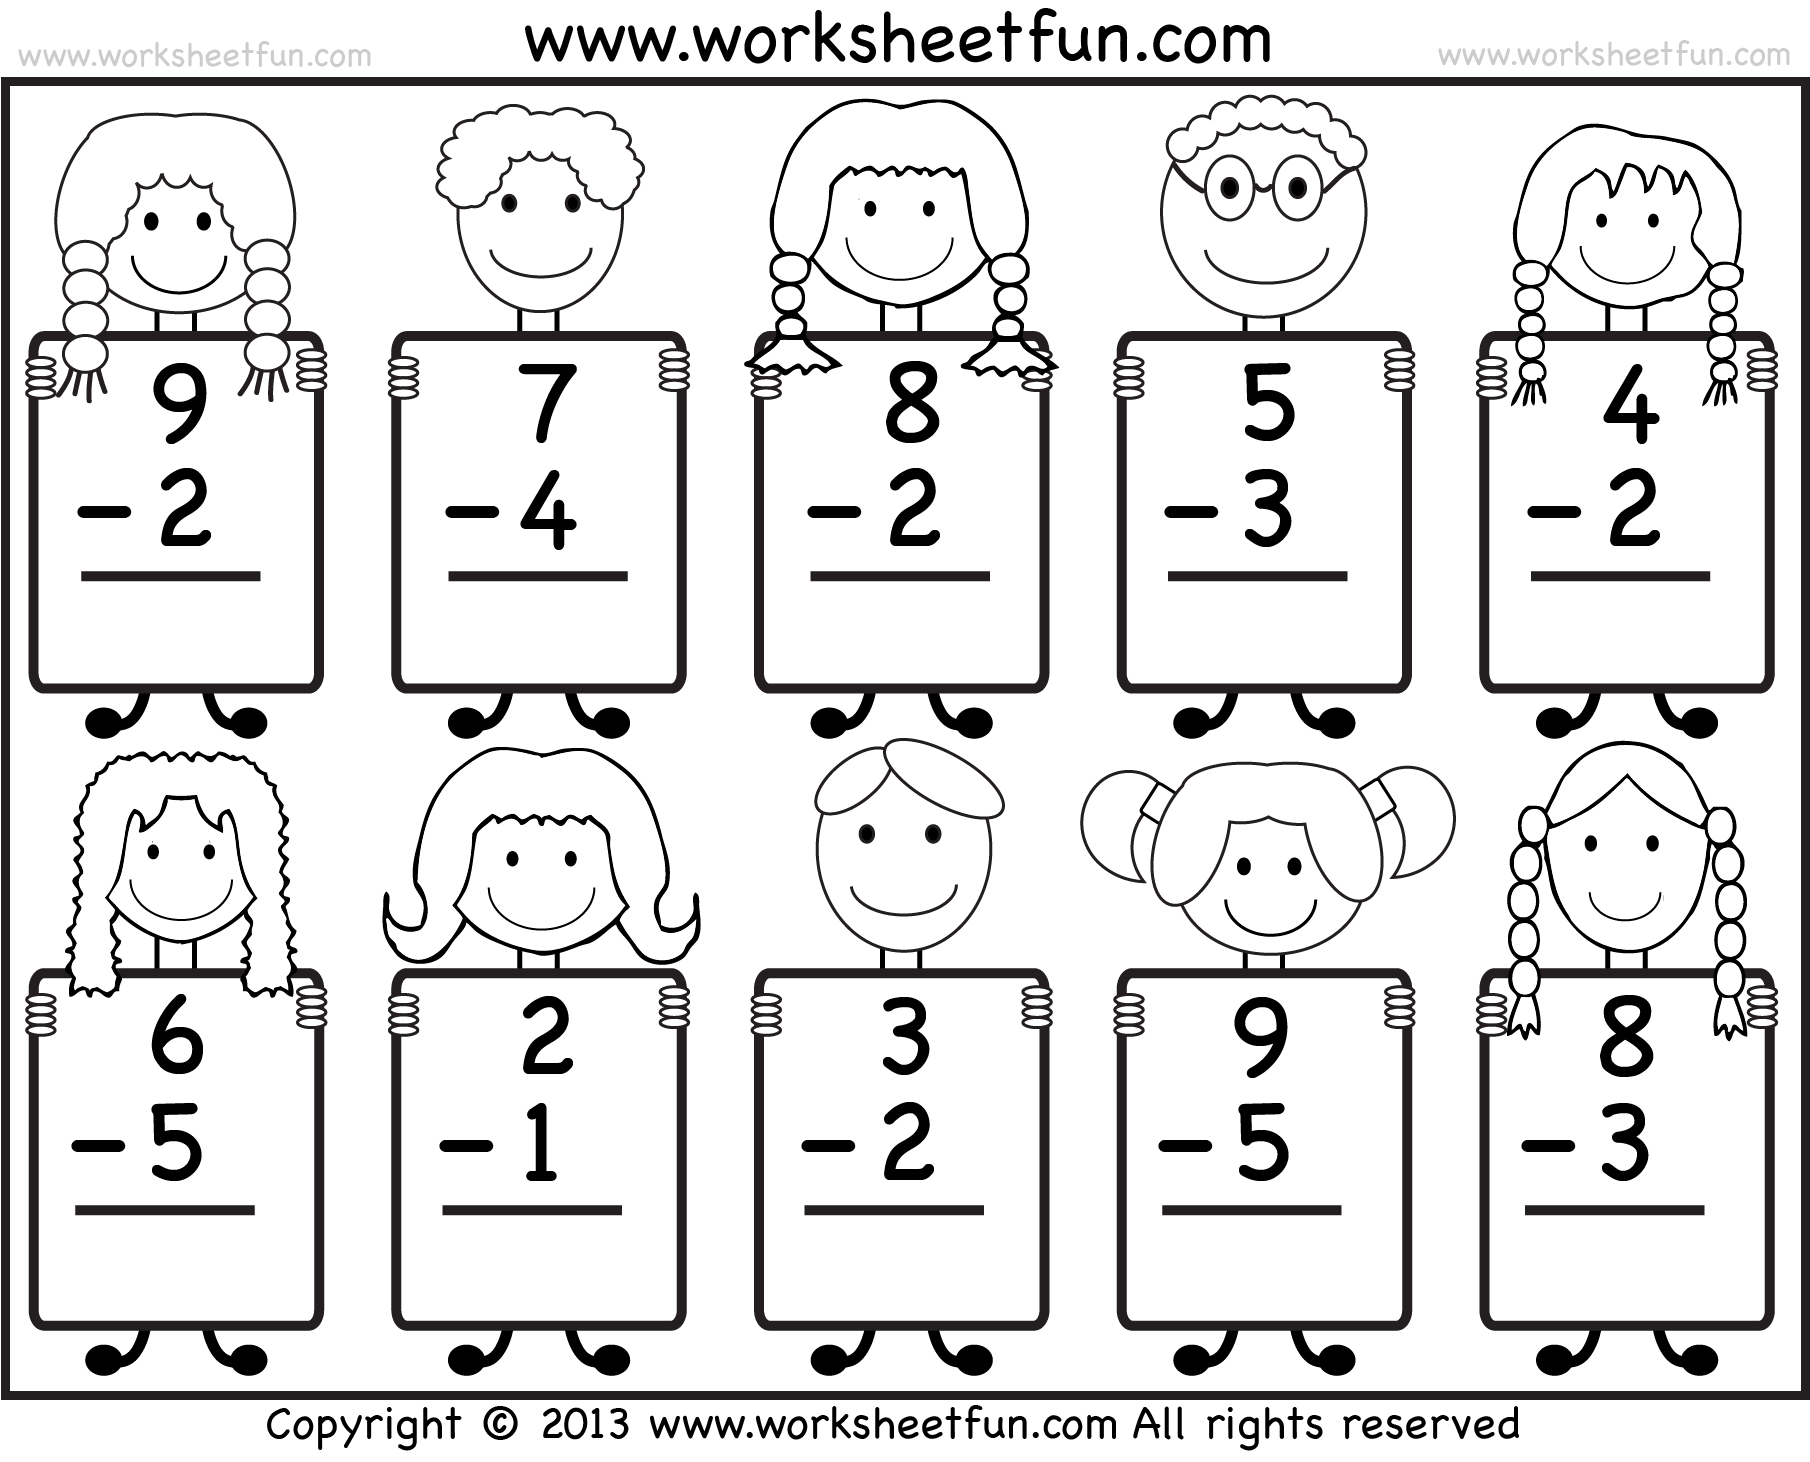 Printables Kindergarten Math Worksheets Addition And Subtraction beginner subtraction 10 kindergarten worksheets addition subtraction